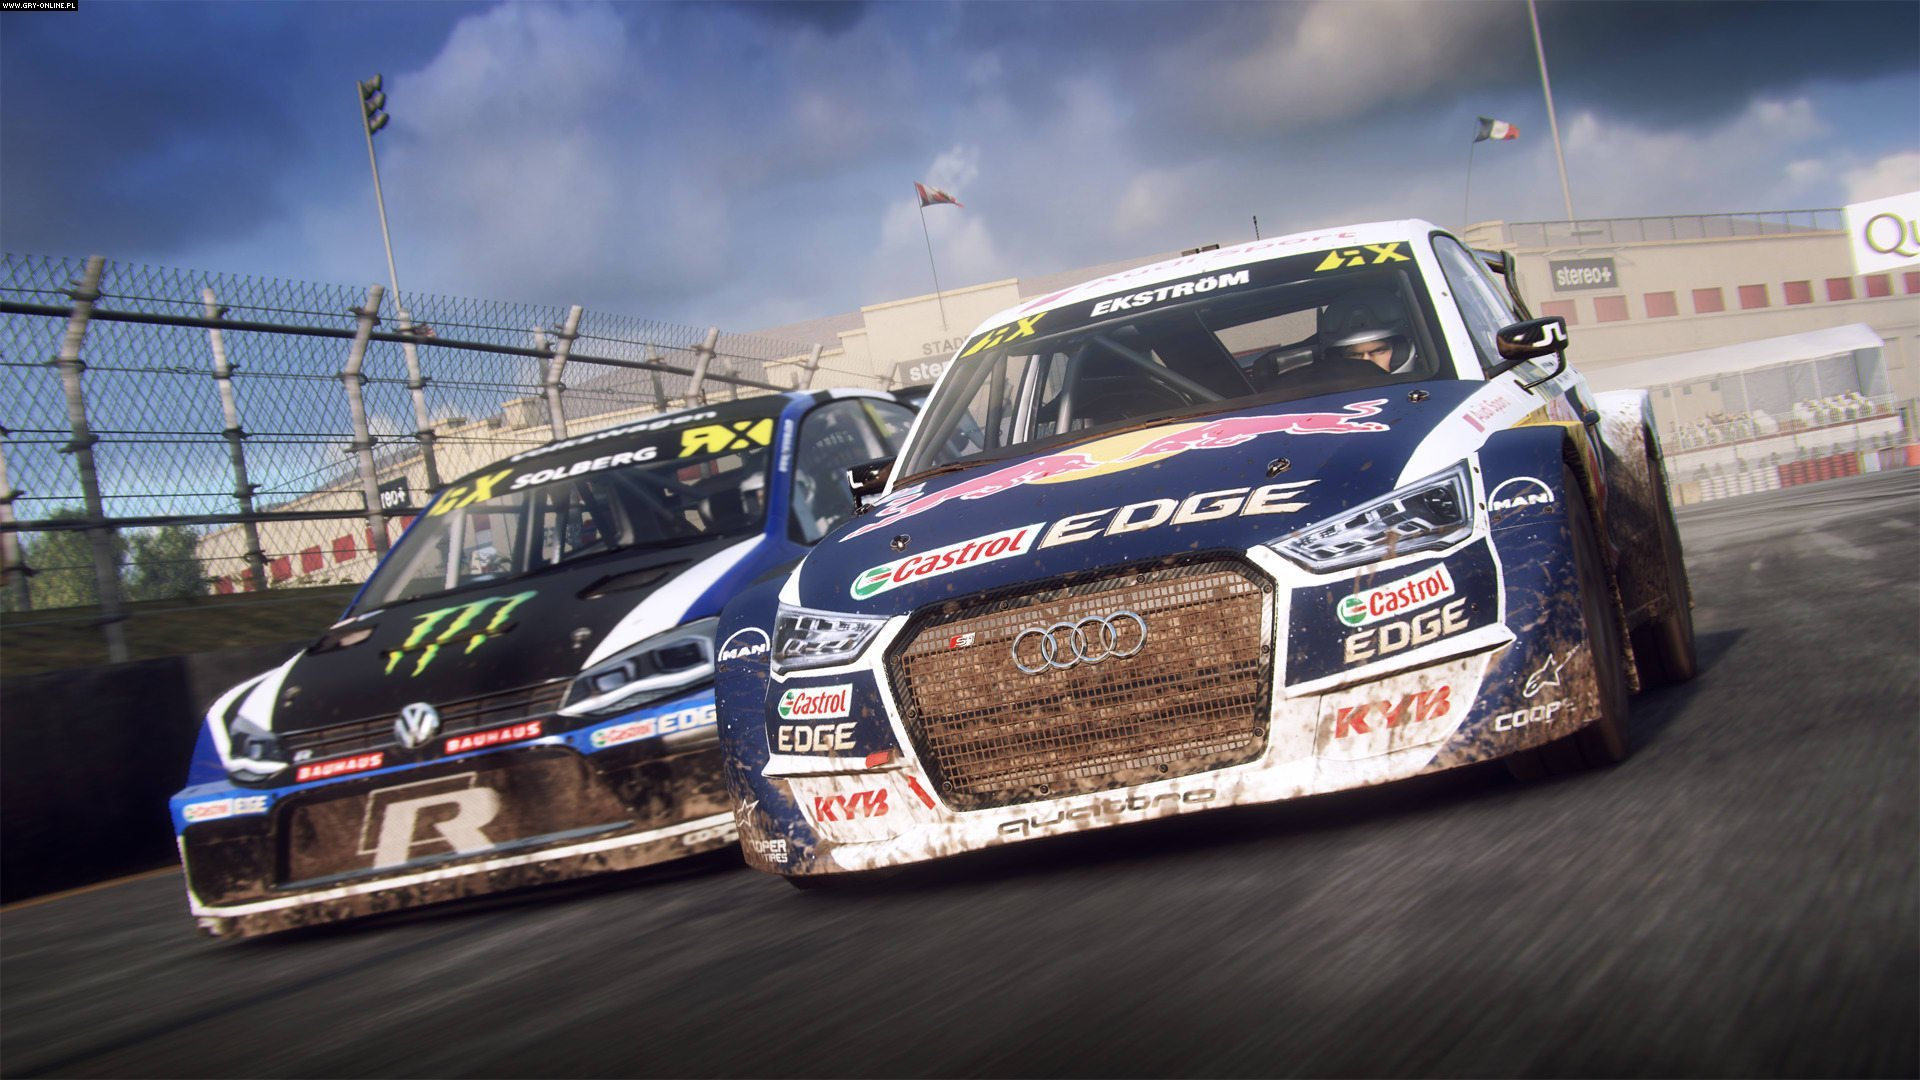 DiRT Rally 2.0 PC, PS4, XONE Gry Screen 45/49, Codemasters Software